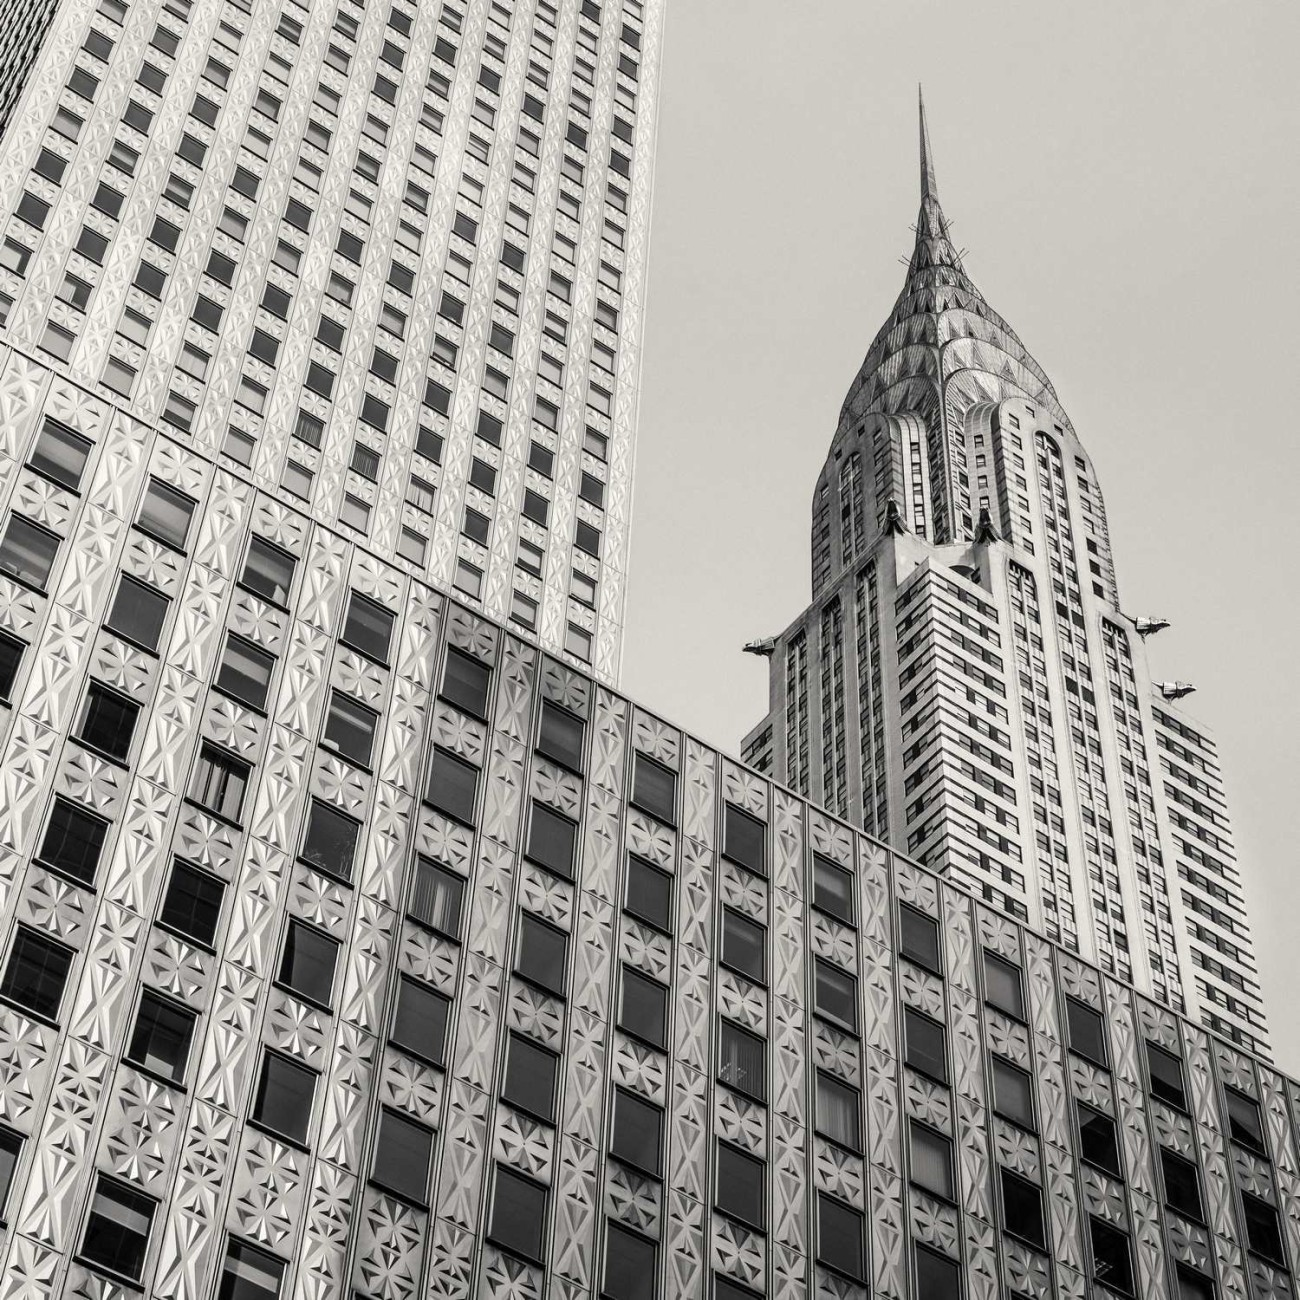 Mobil and Chrysler Buildings, NY, 2013